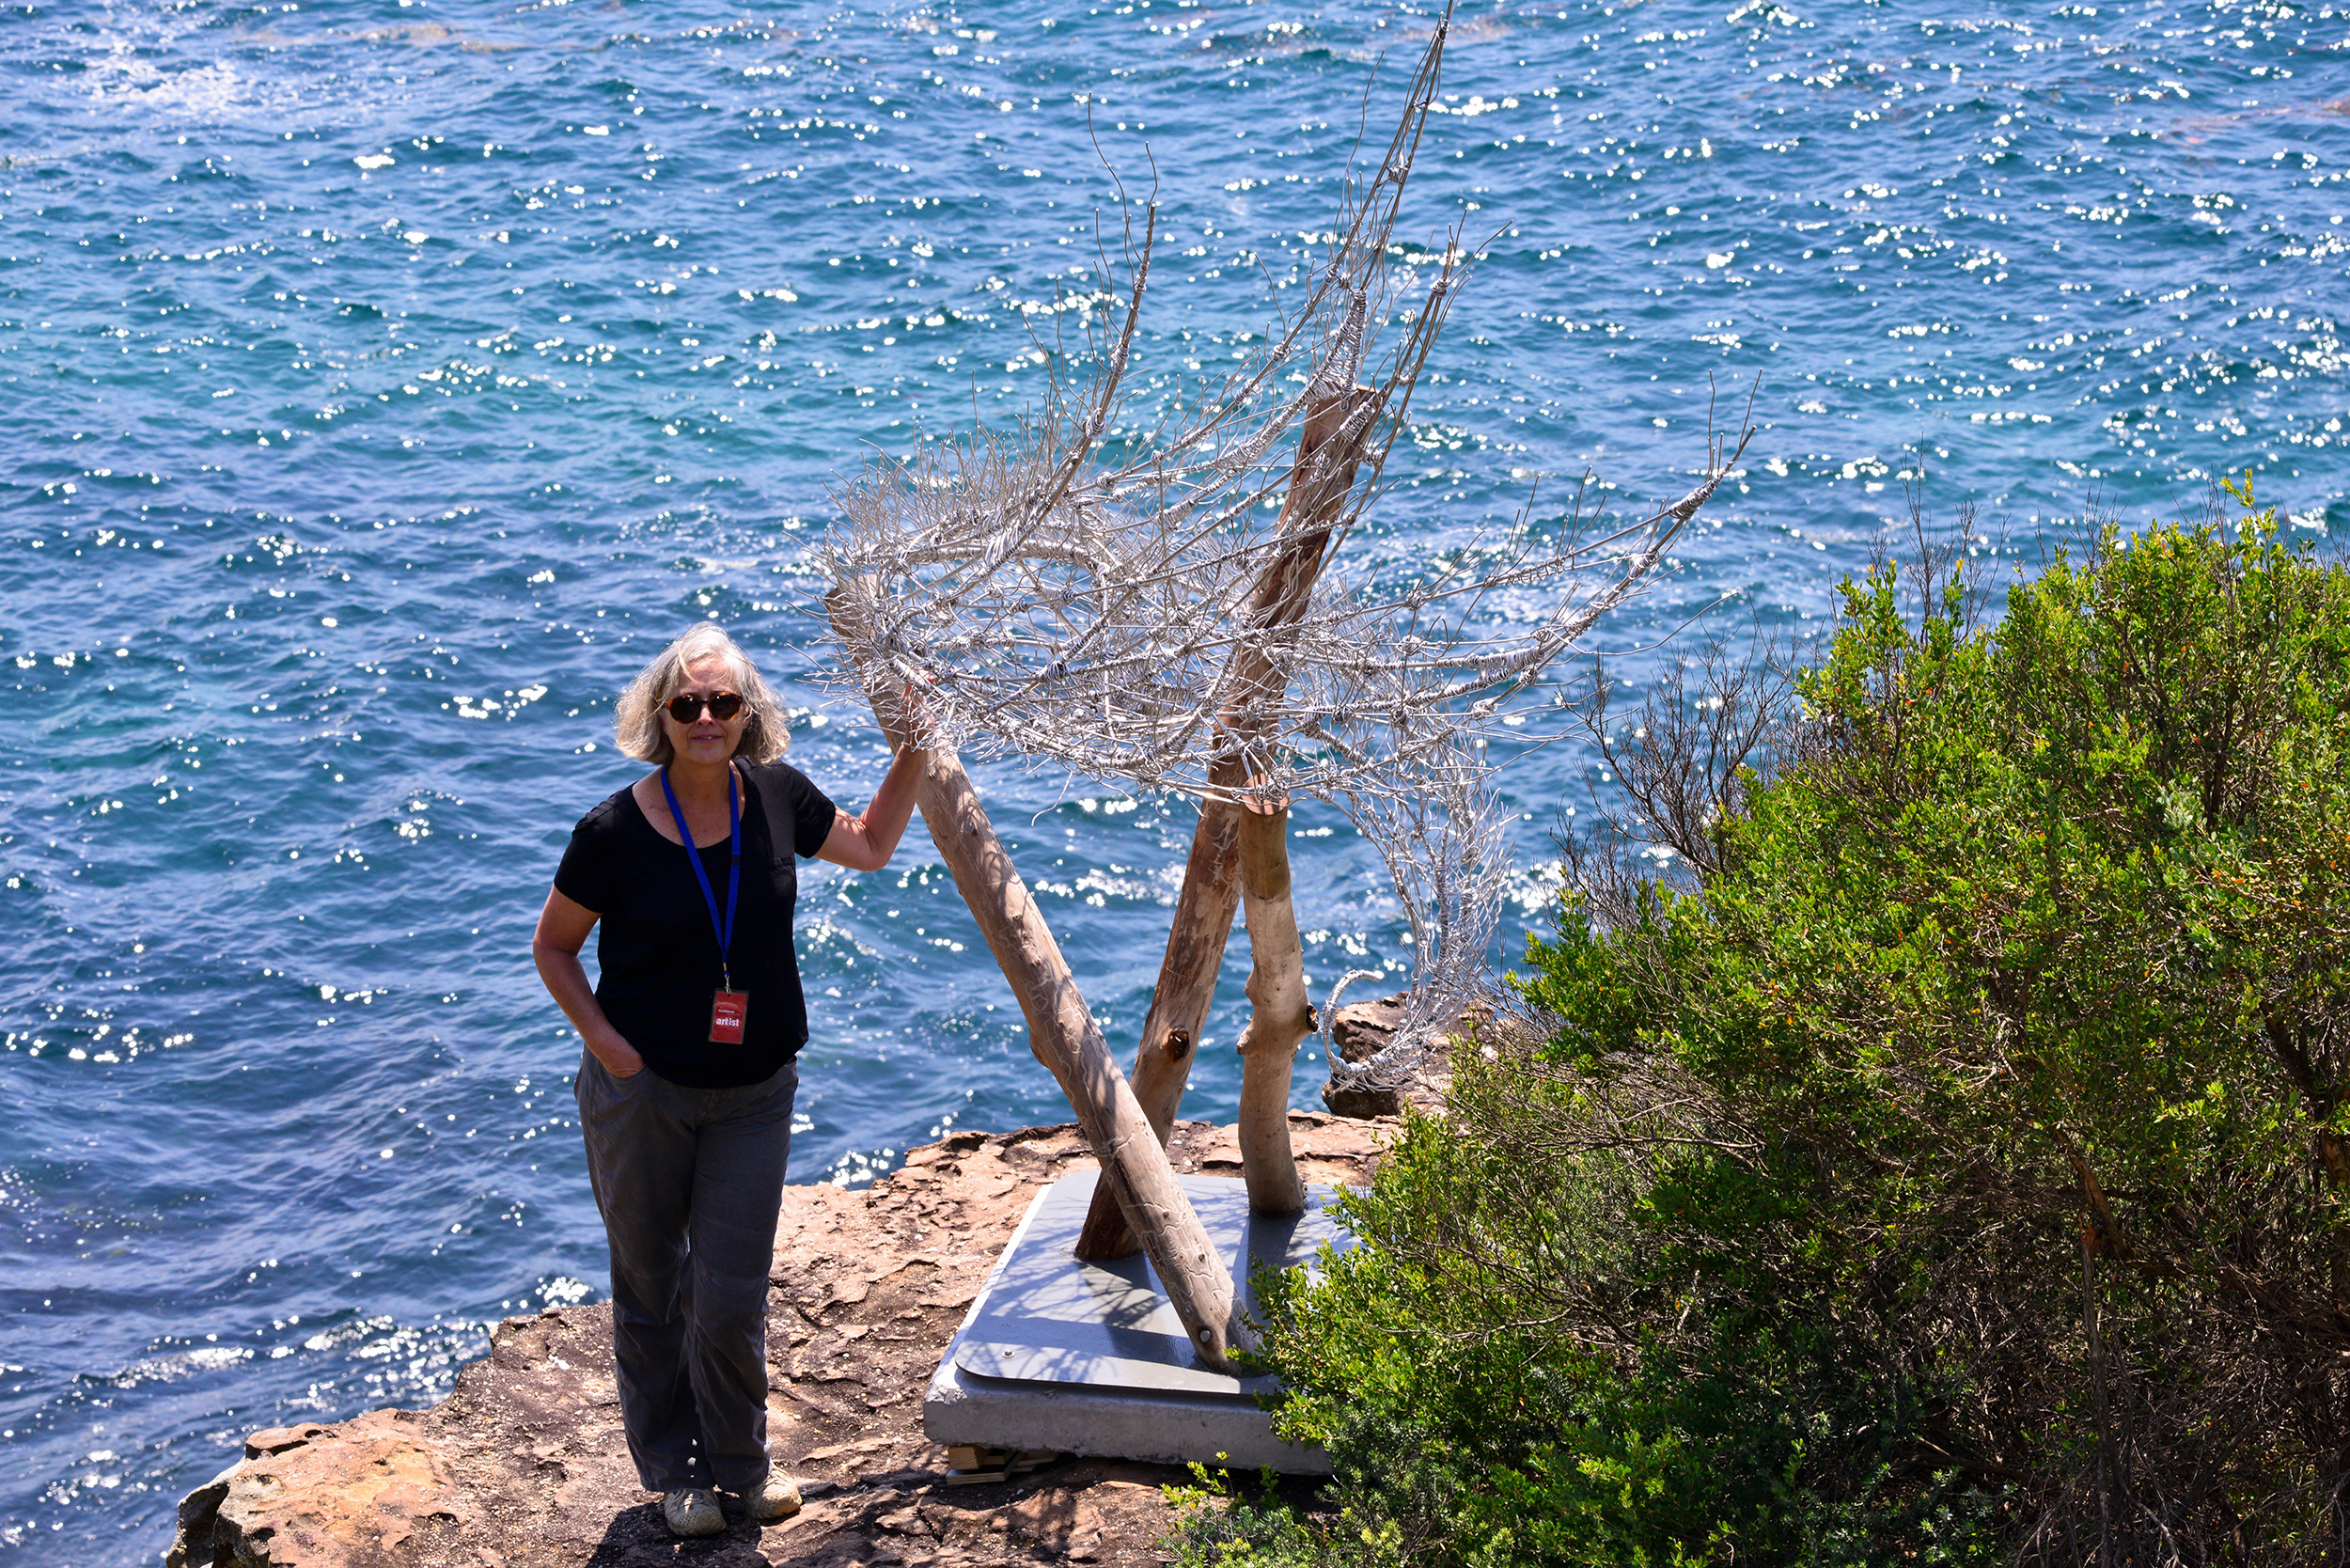 Bronwyn Berman, Windspiral VI, Sculpture by the Sea, Bondi 2015. Photo Clyde Yee